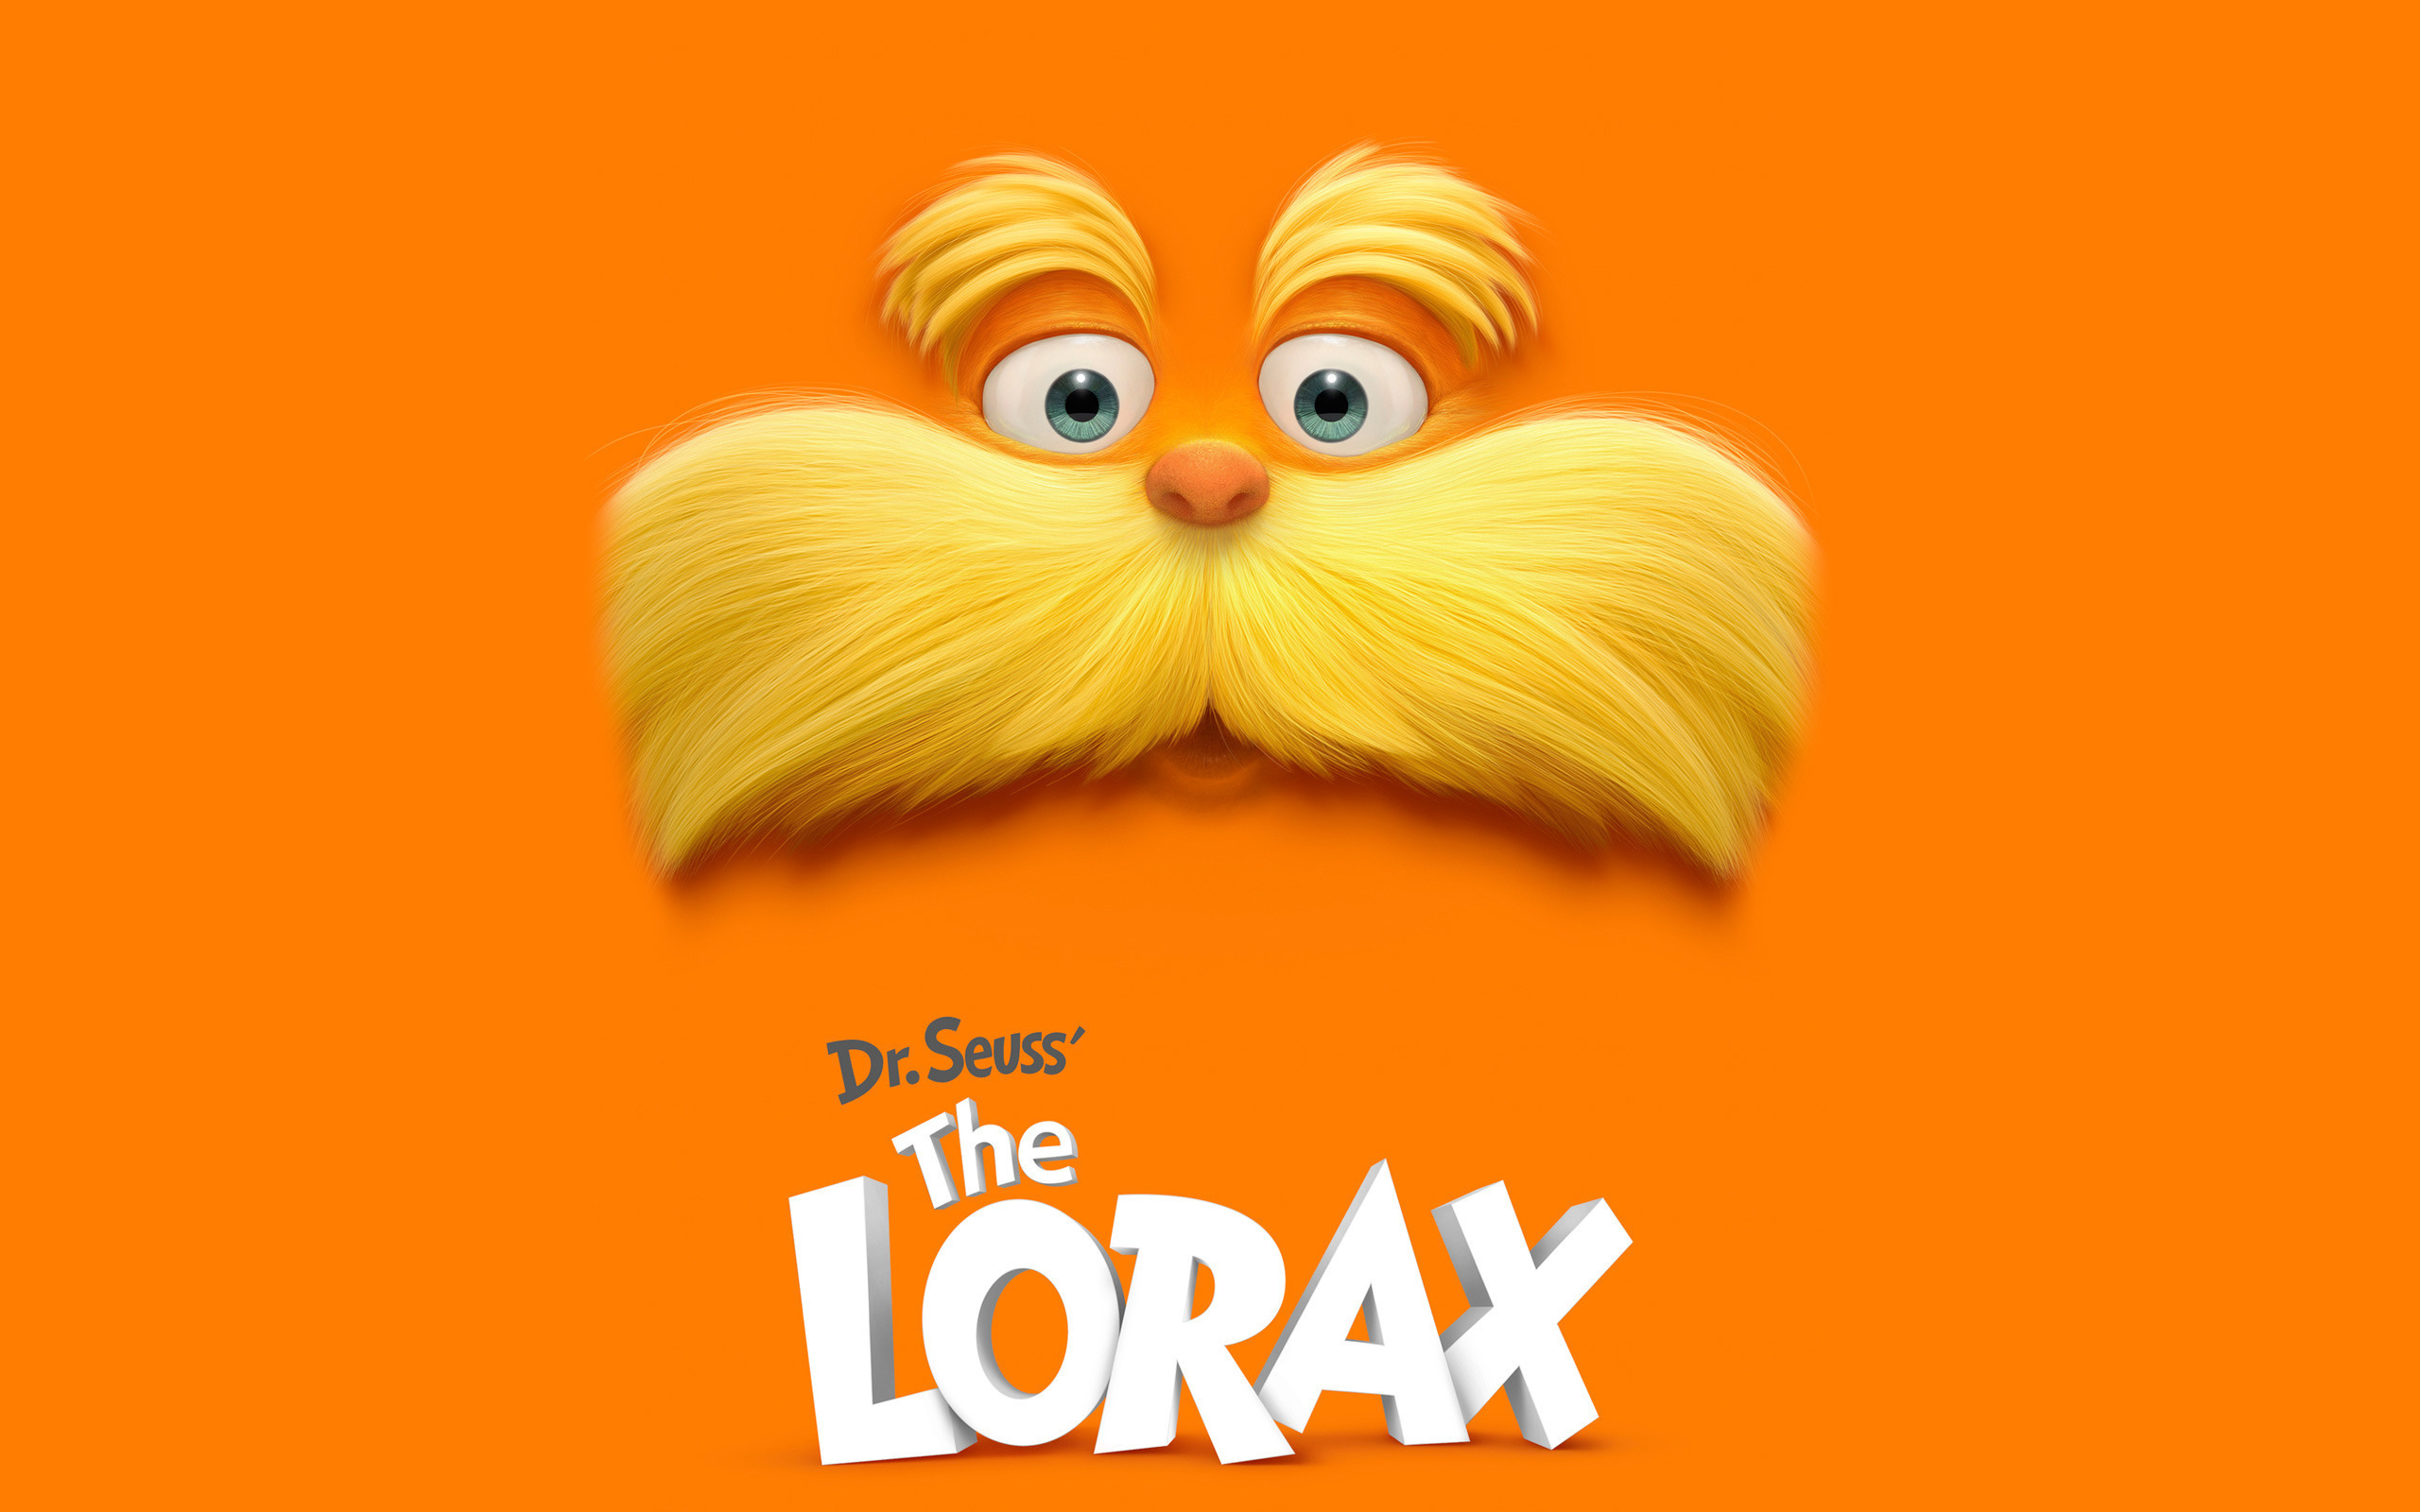 Dr Seuss In The Lorax Movie